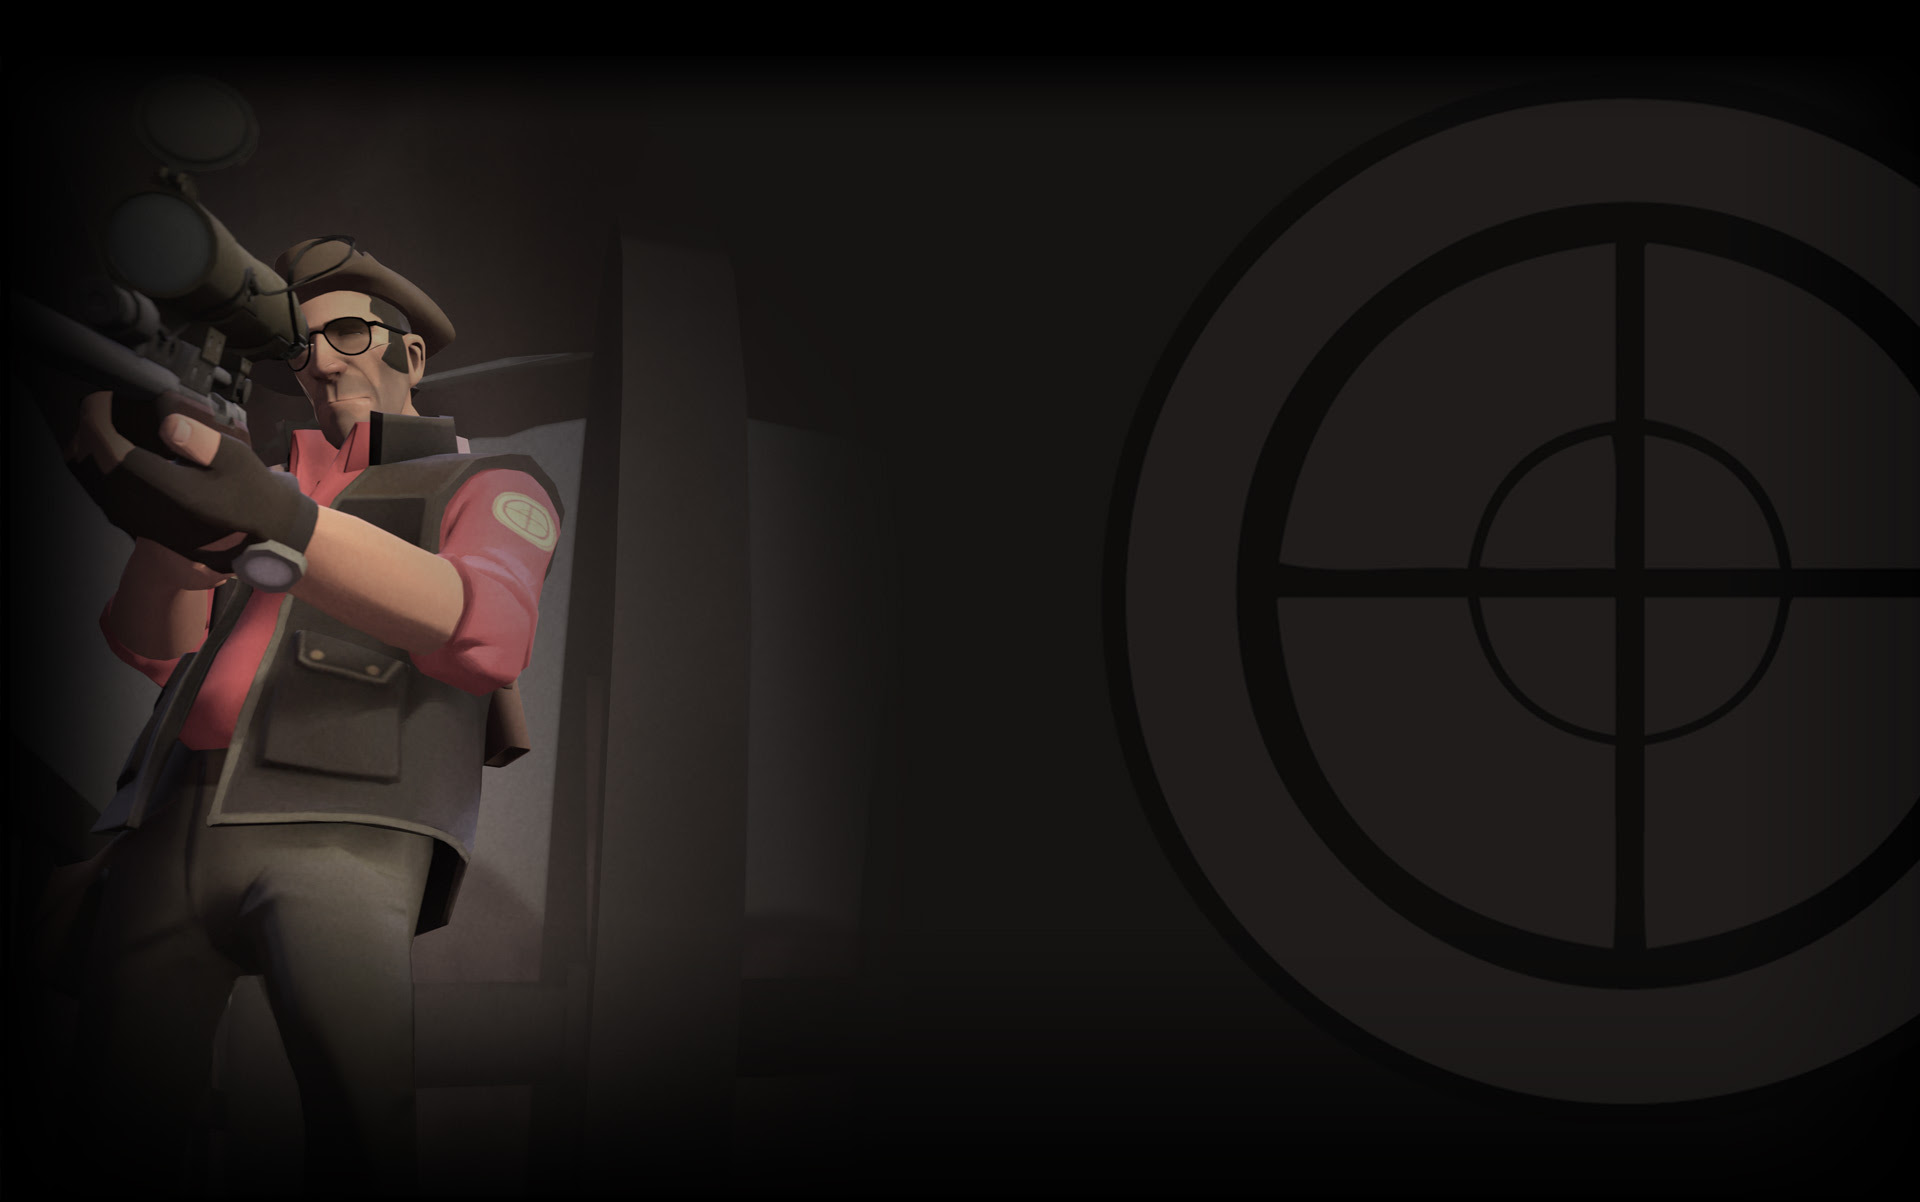 Team Fortress 2 Steam Download Size Download Dublox Game